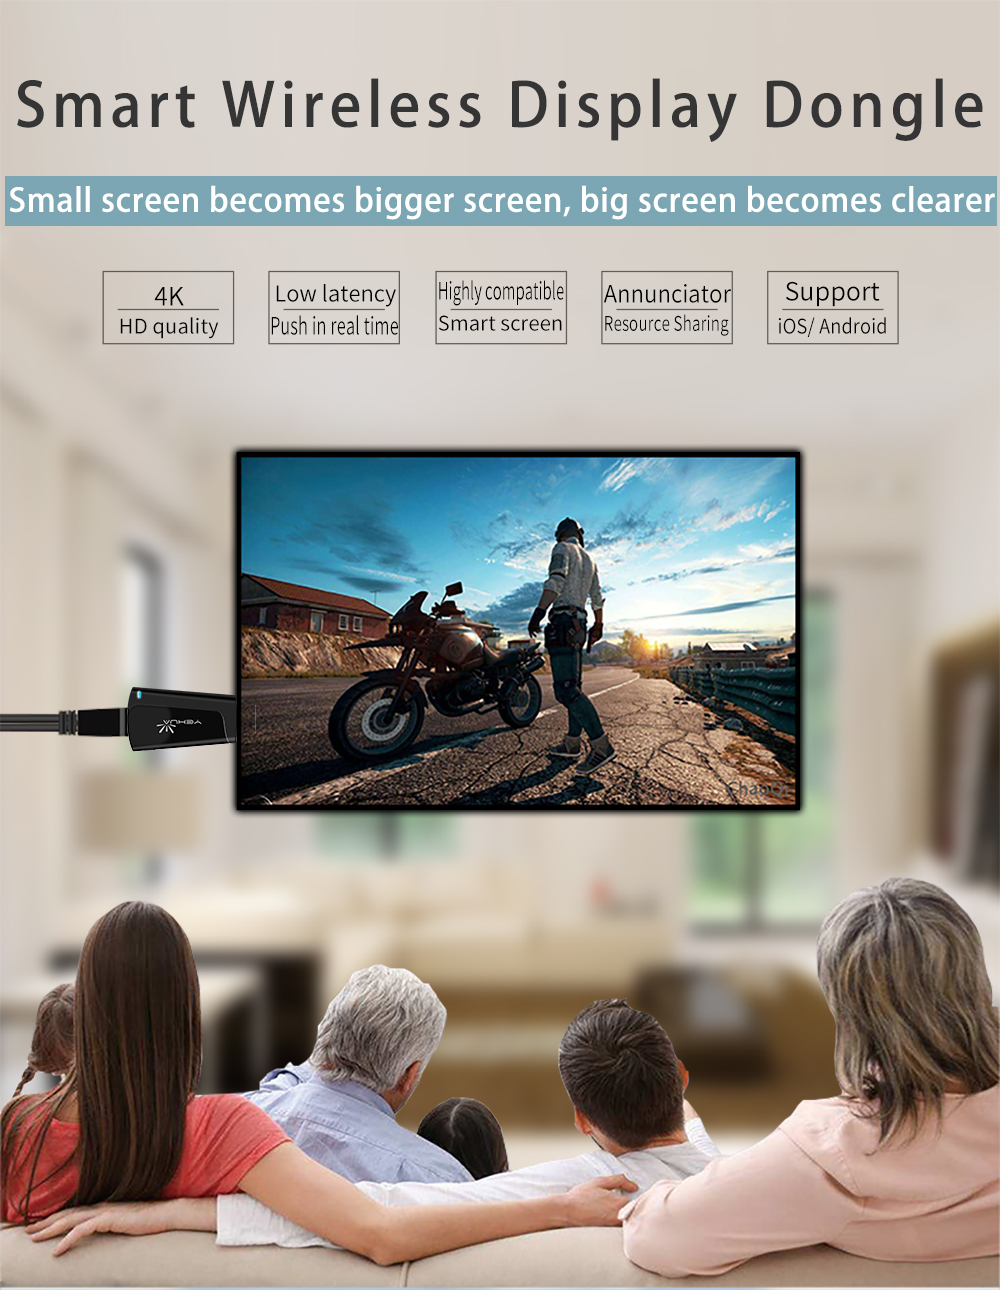 2.4G+5G miracast wifi display anycast dongle for iPhone Xs Max iOS13 Screen Mirroring 2K 4K Ultra TV Streaming